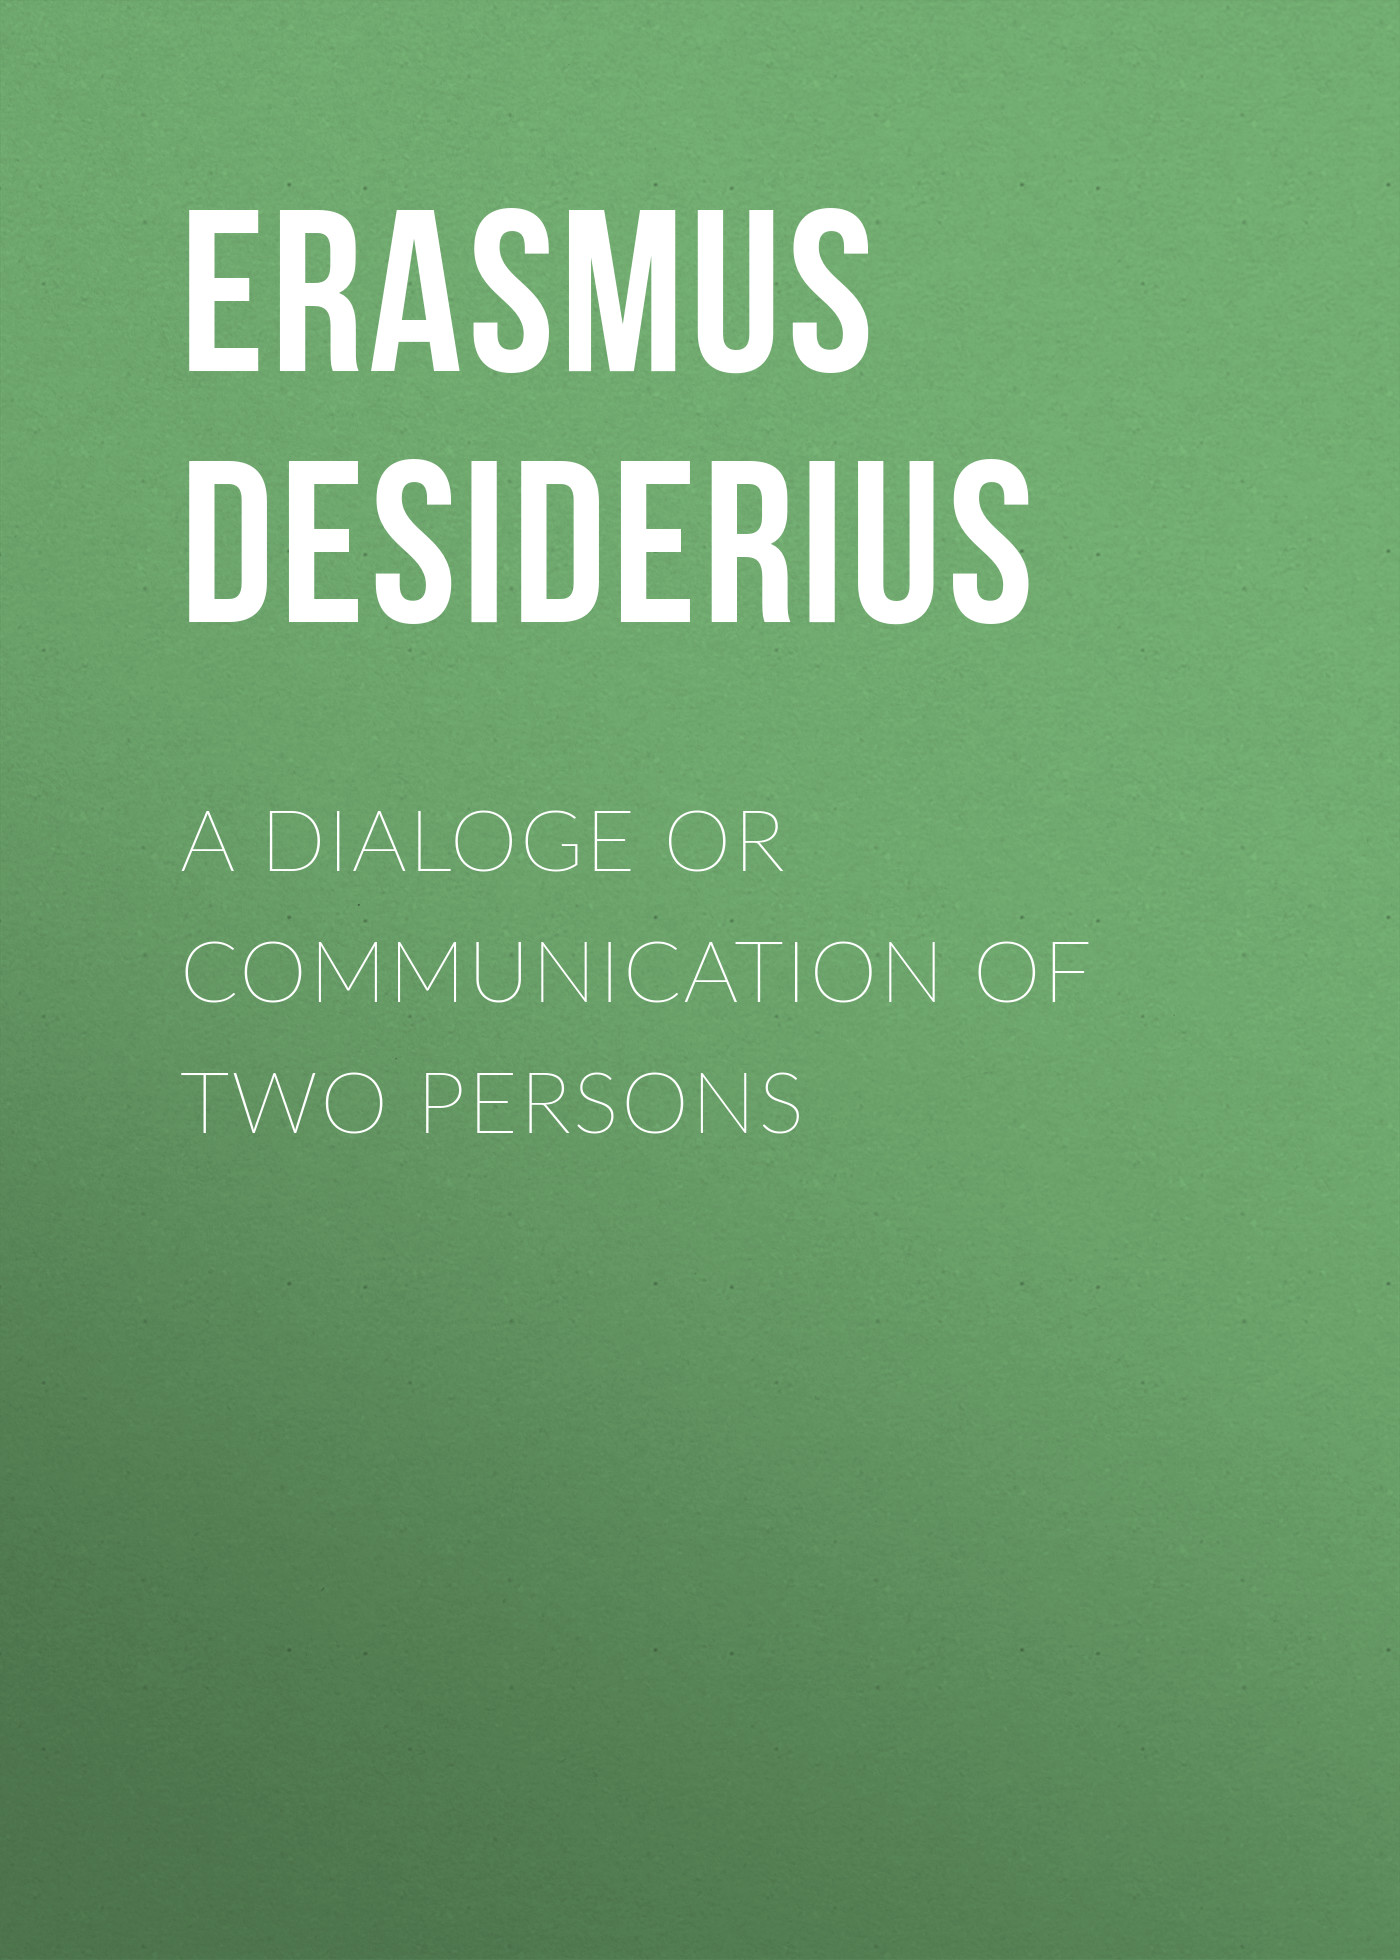 Erasmus Desiderius A dialoge or communication of two persons